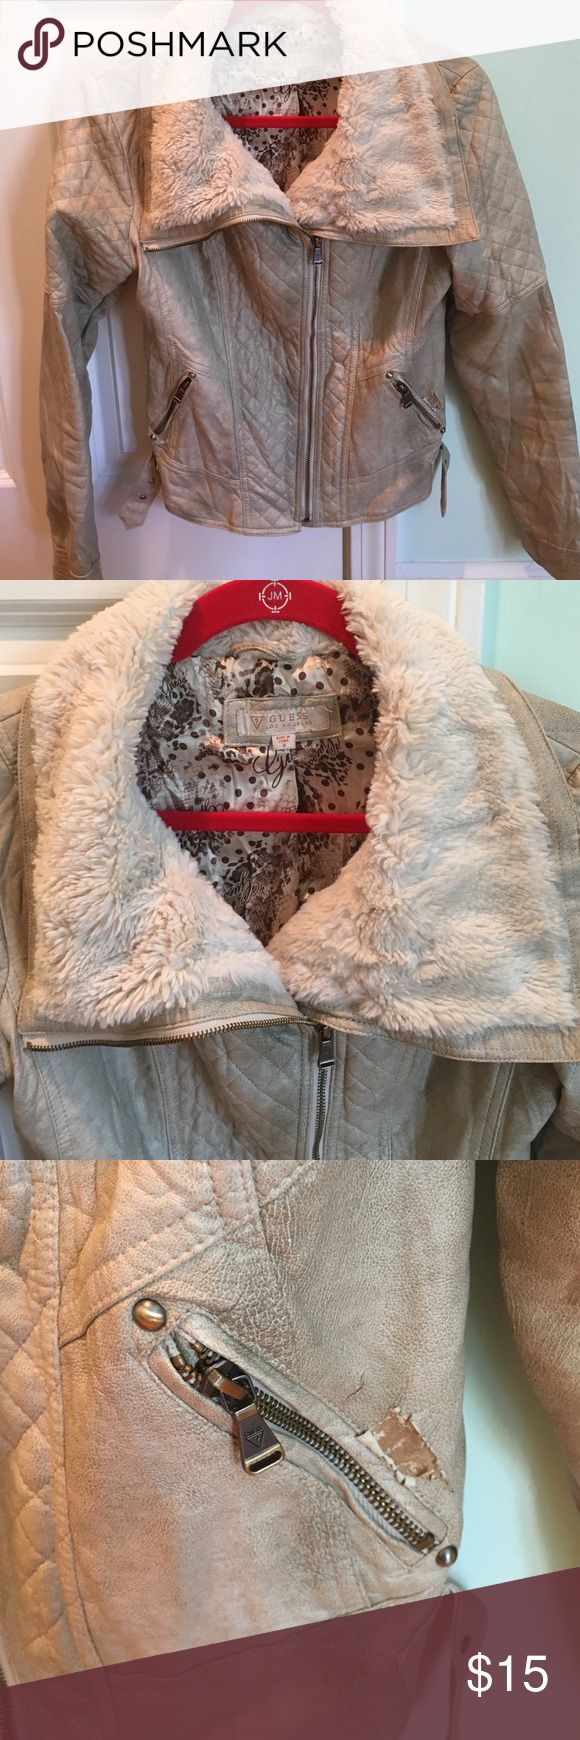 Guess faux leather jacket with faux fur Guess faux leather jacket with faux fur trim. Color of jacket is a distressed beige. Only imperfection is a tear next to the left zipper as seen in photo. Can negotiate price fairly due to the imperfection. Guess Jackets & Coats Blazers